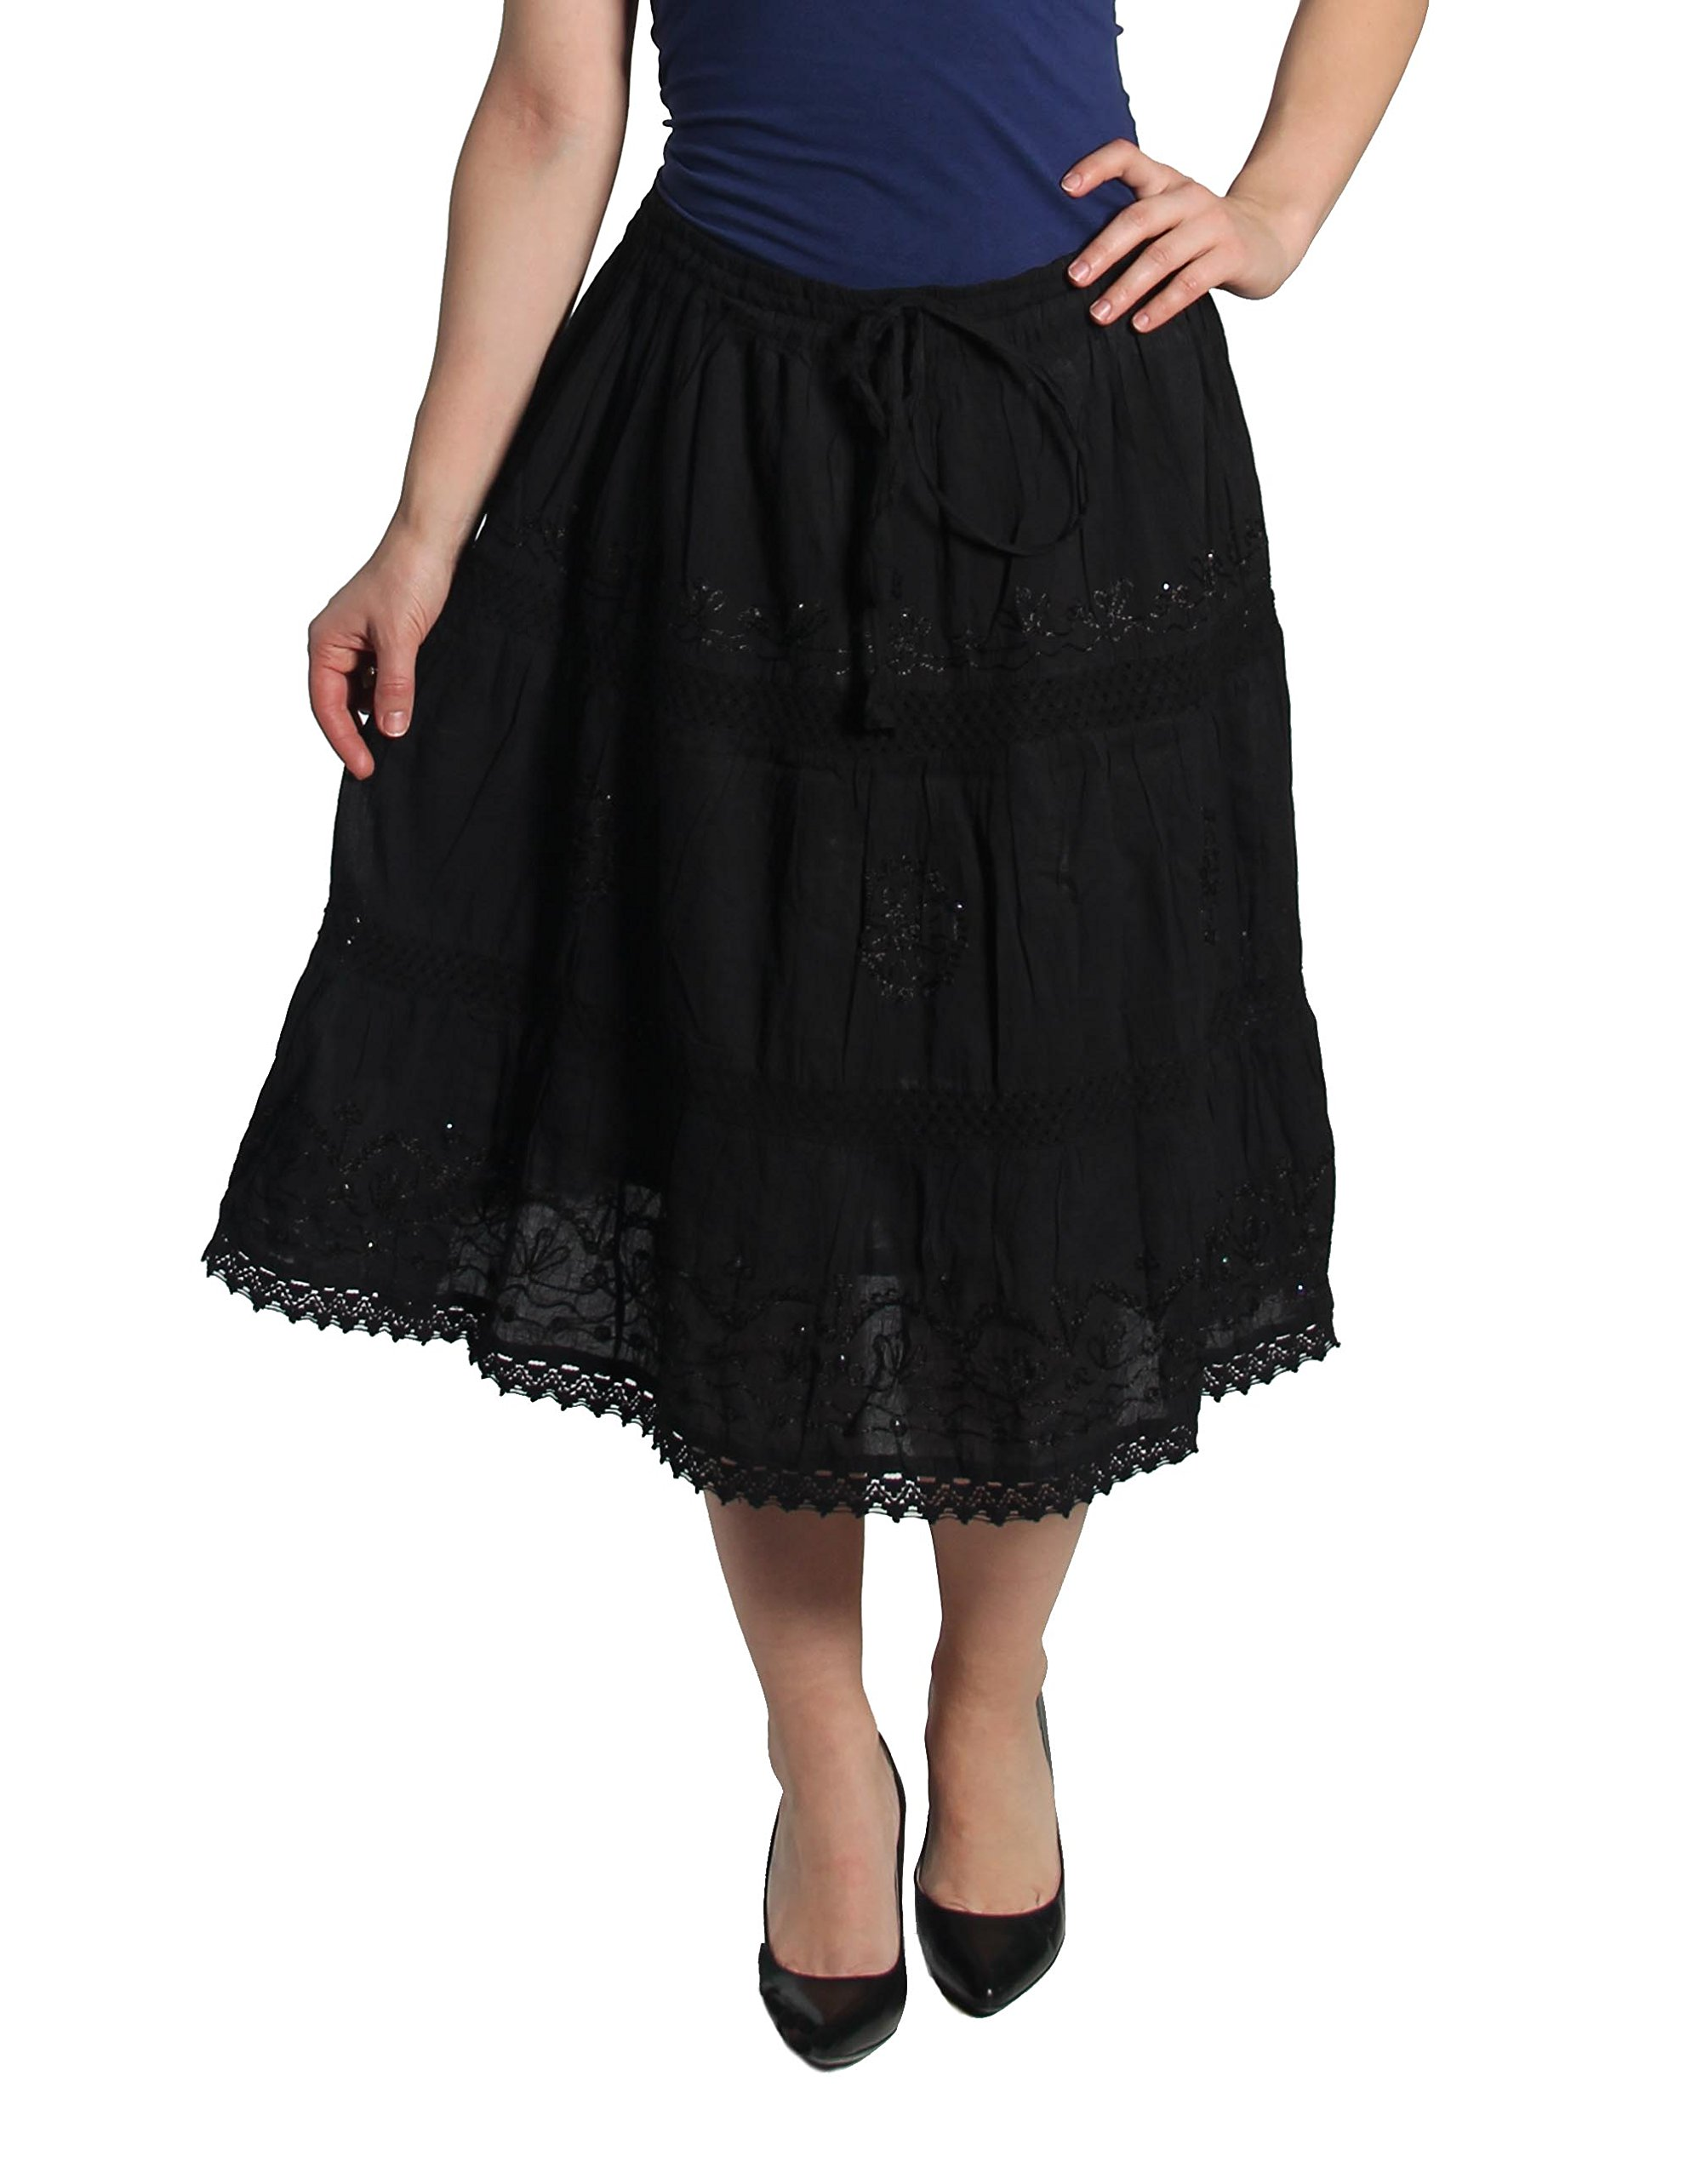 KayJay Styles Solid Color Bohemian Hippie Belly Gypsy Short Cotton Mid Length Skirt (Black) One Size